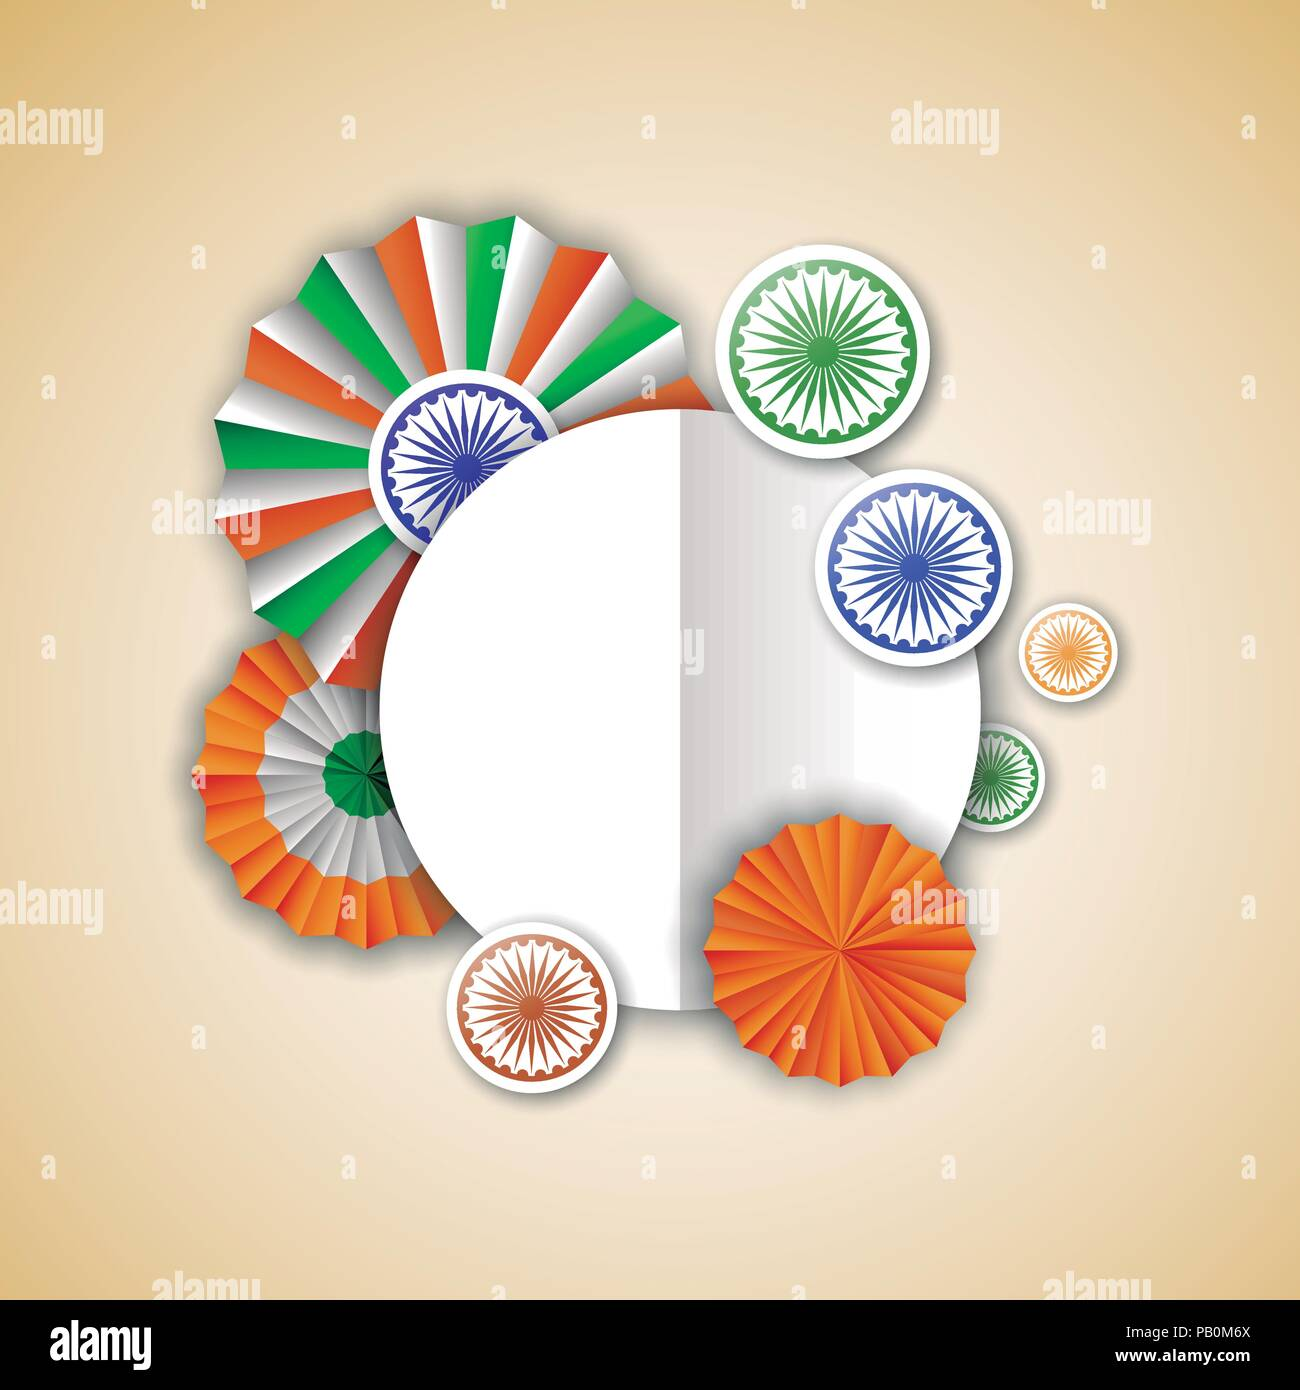 India Independence Day Greeting Card Template Indian Tricolor Badge